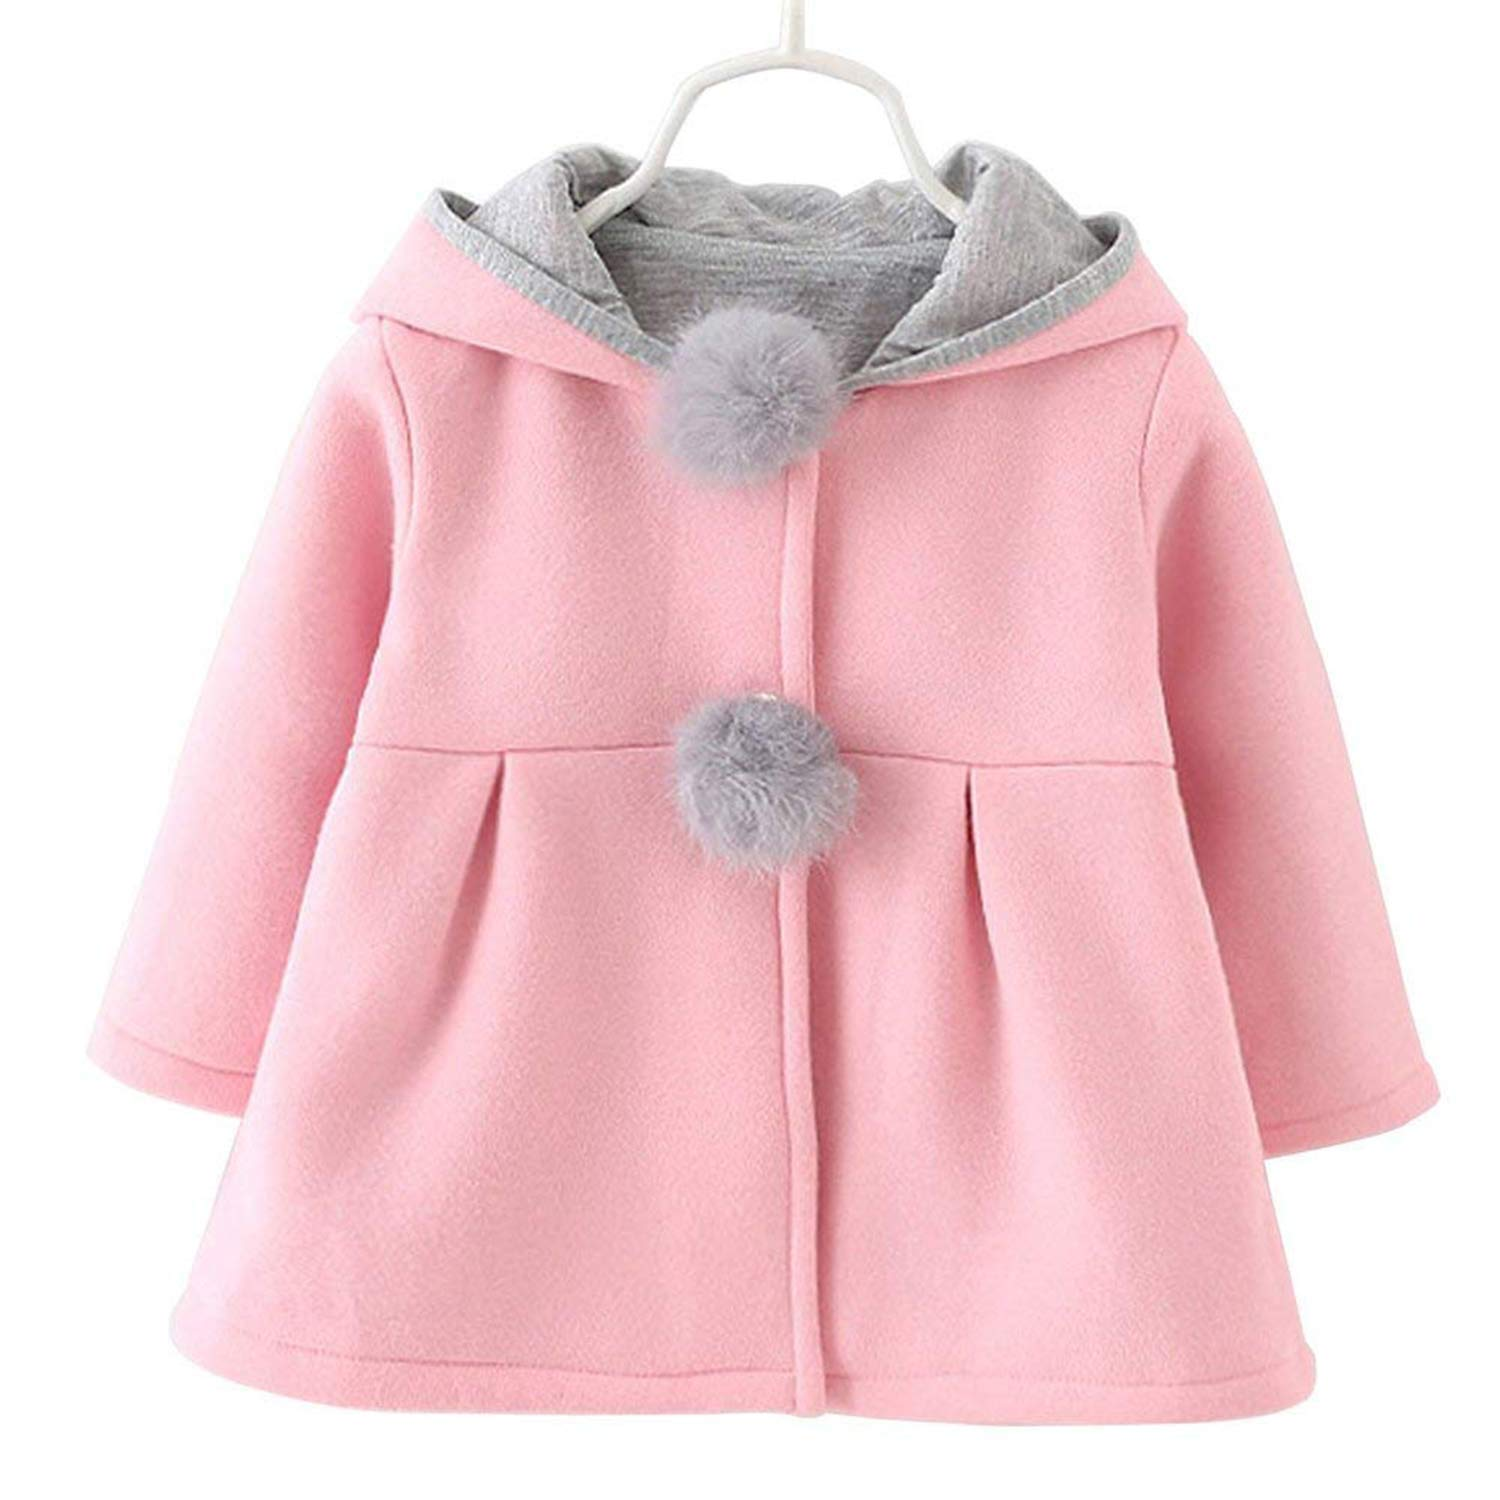 66be0ab8d Baby Girls Toddler Kids Winter Big Ears Hoodie Jackets Outerwear ...